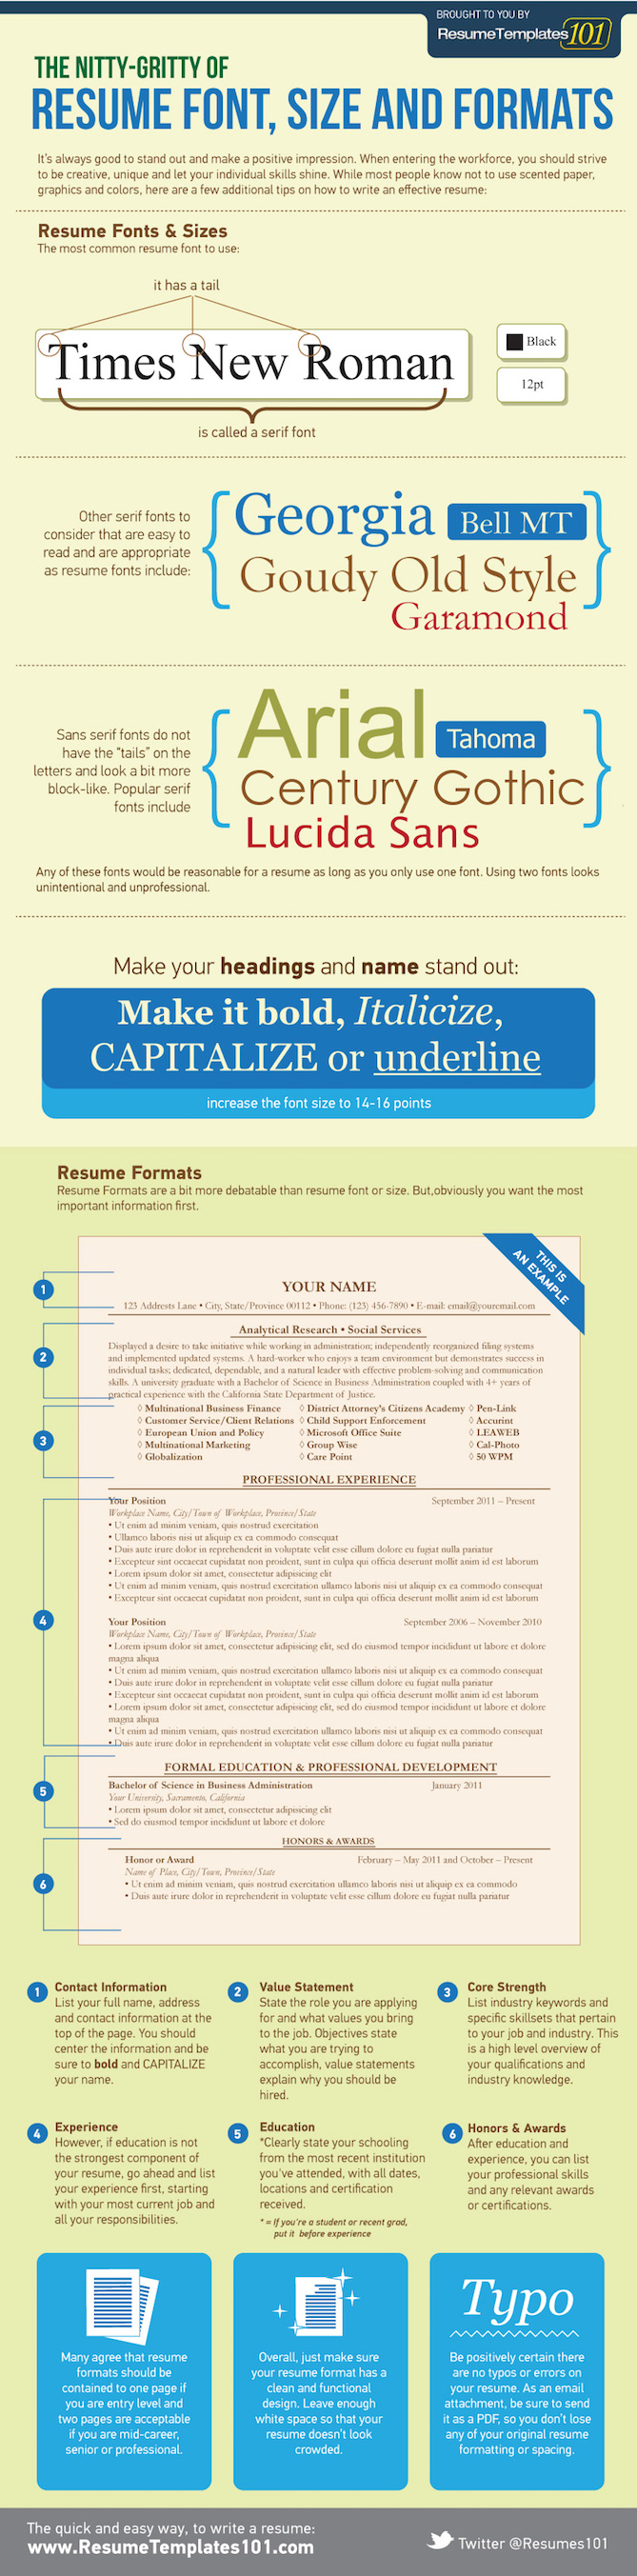 Ordinaire Infographic On How To Format A Resume Using The Best Font Type, Font Size,